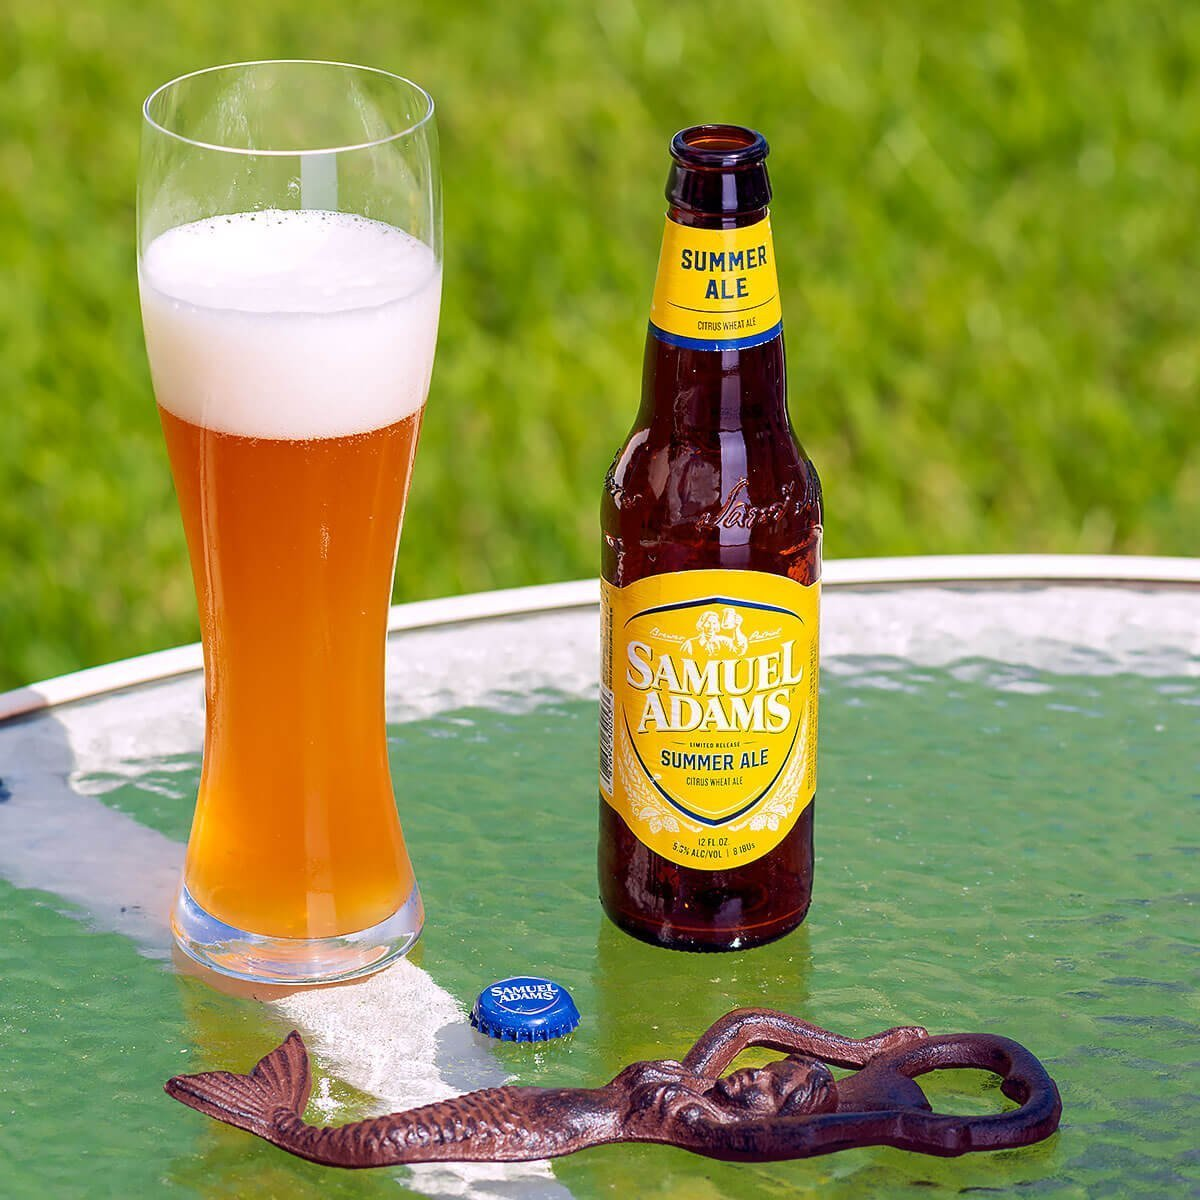 Samuel Adams Summer Ale is an American Wheat Ale by the Boston Beer Company that blends bright citrus, wheat, and grains of paradise.